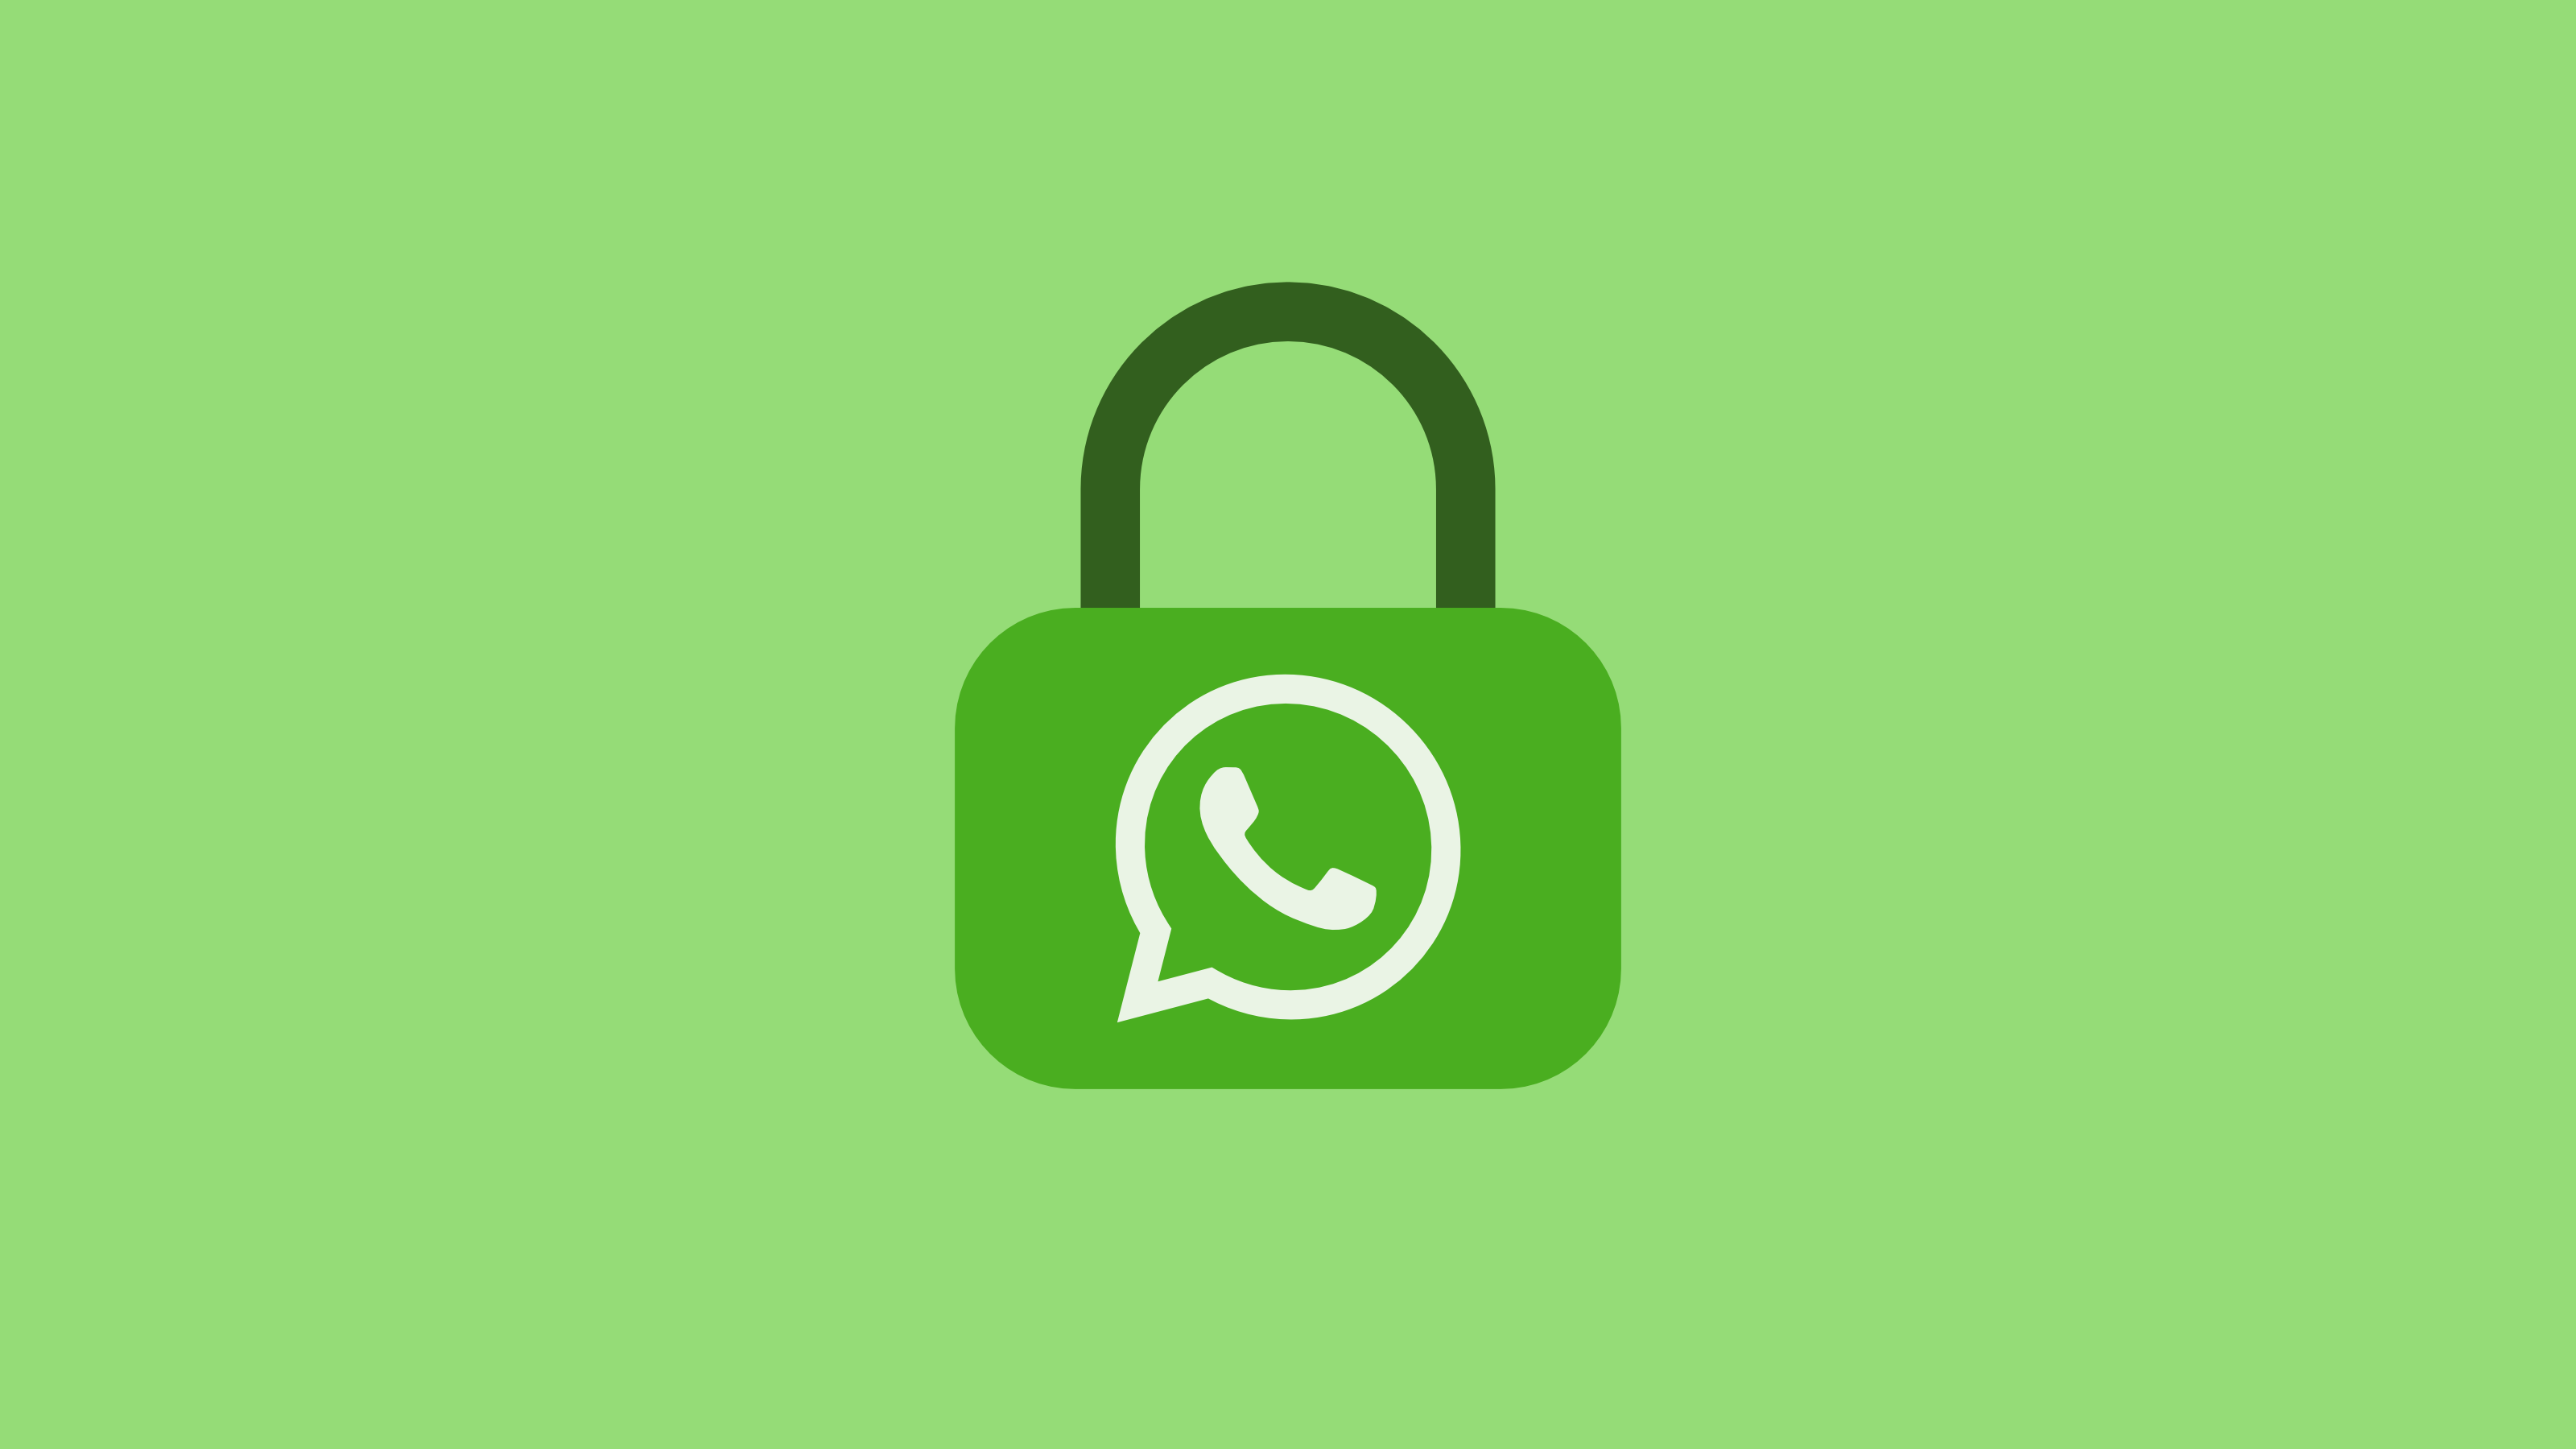 privacy security whatsapp